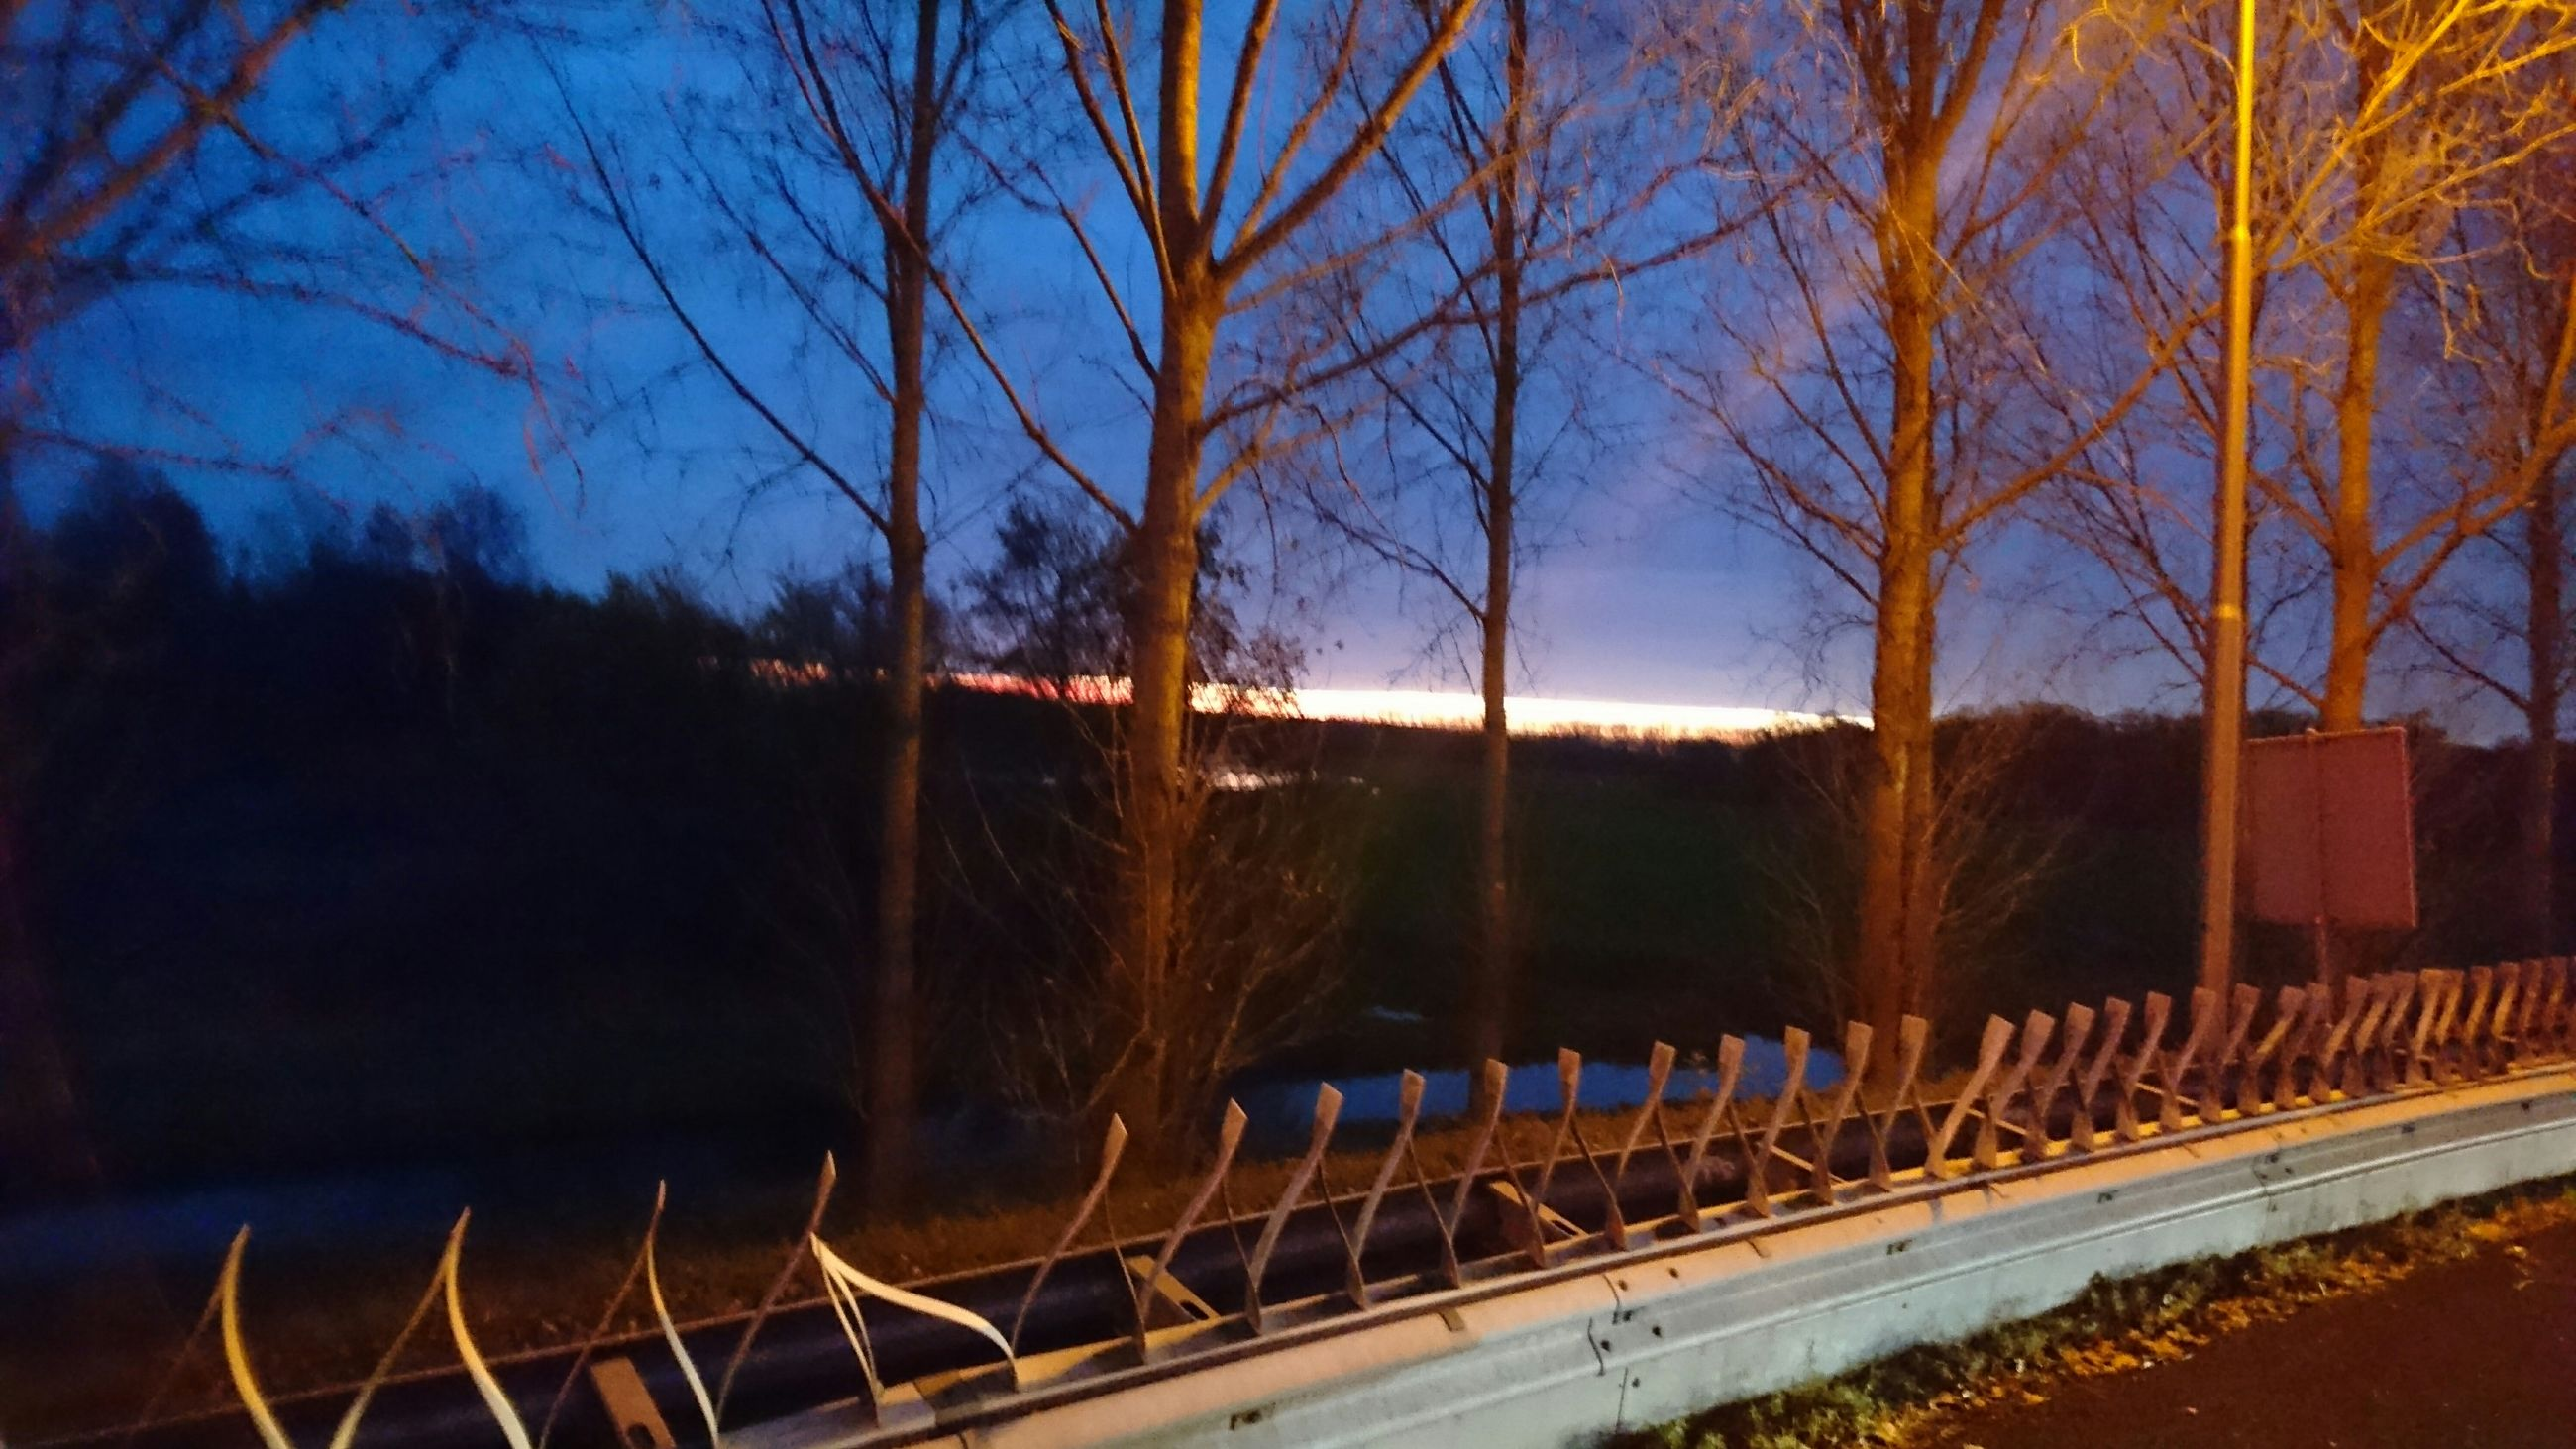 tree, bare tree, sky, railing, transportation, connection, built structure, railroad track, bridge - man made structure, dusk, no people, silhouette, architecture, nature, outdoors, branch, road, tranquility, blue, rail transportation